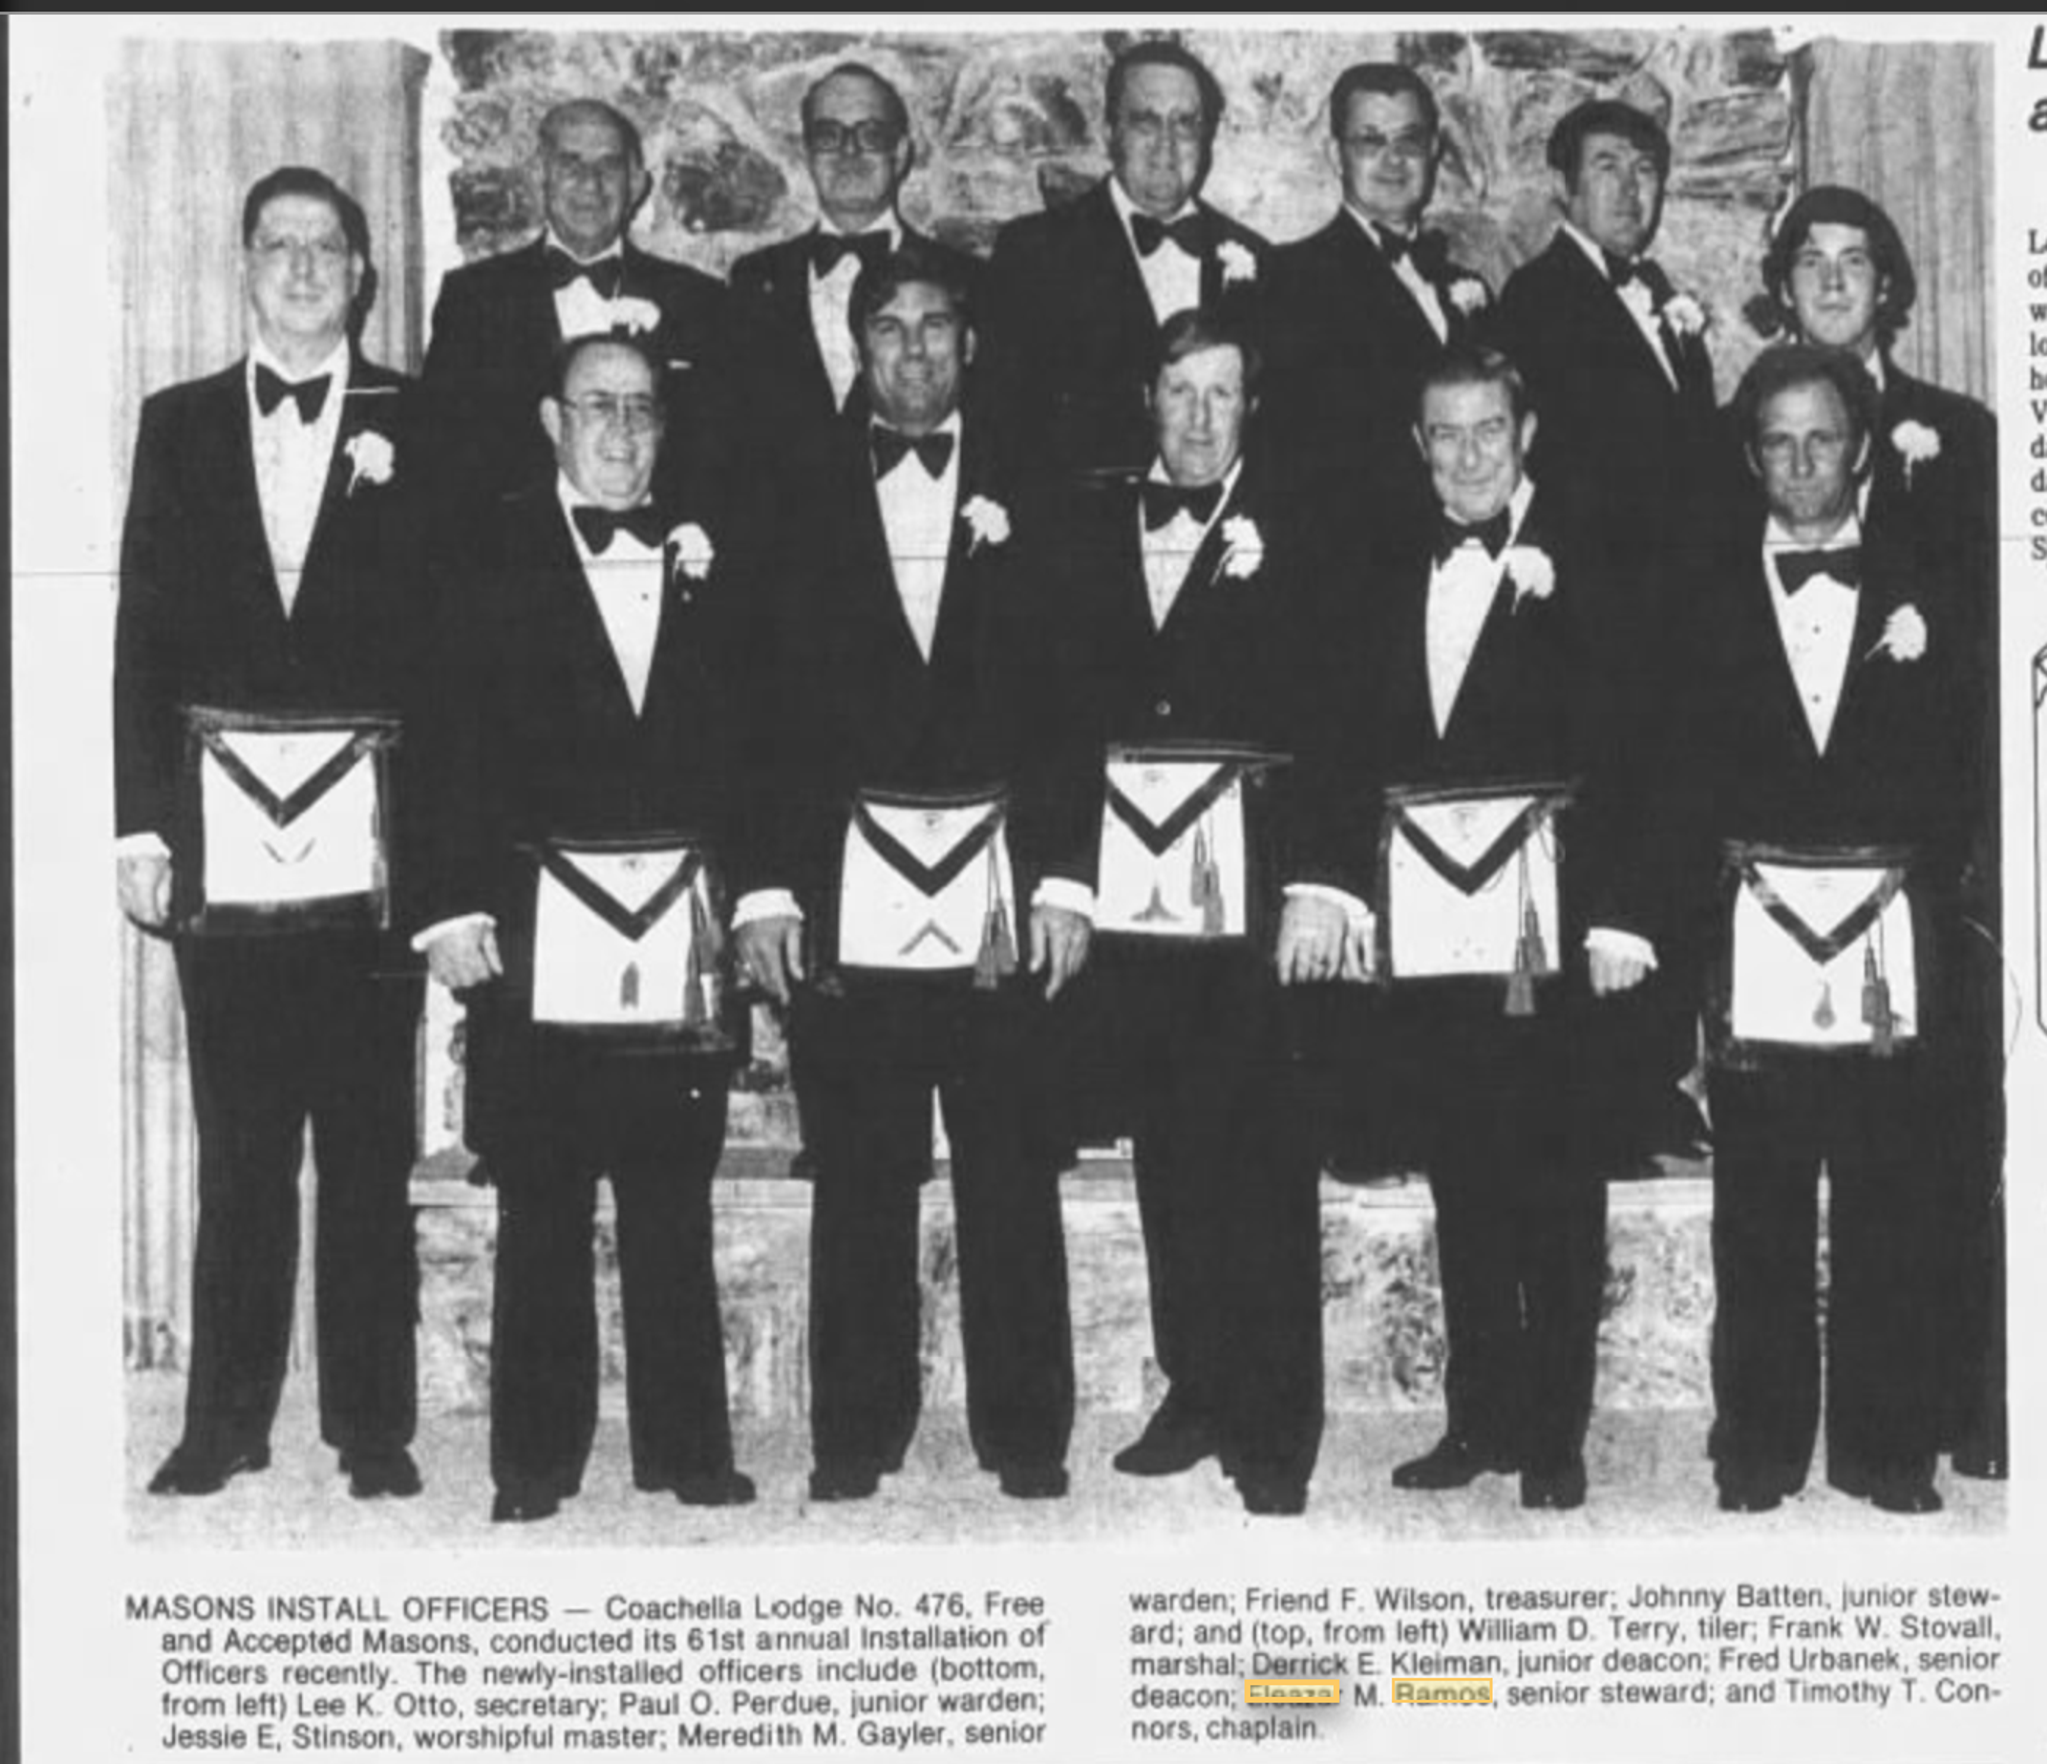 A Jan. 26 1980 photo shows Eleazar Ramos  Sr. (second from top right) who was installed as senior steward of the Coachella Lodge No. 476, Free and Accepted Masons.